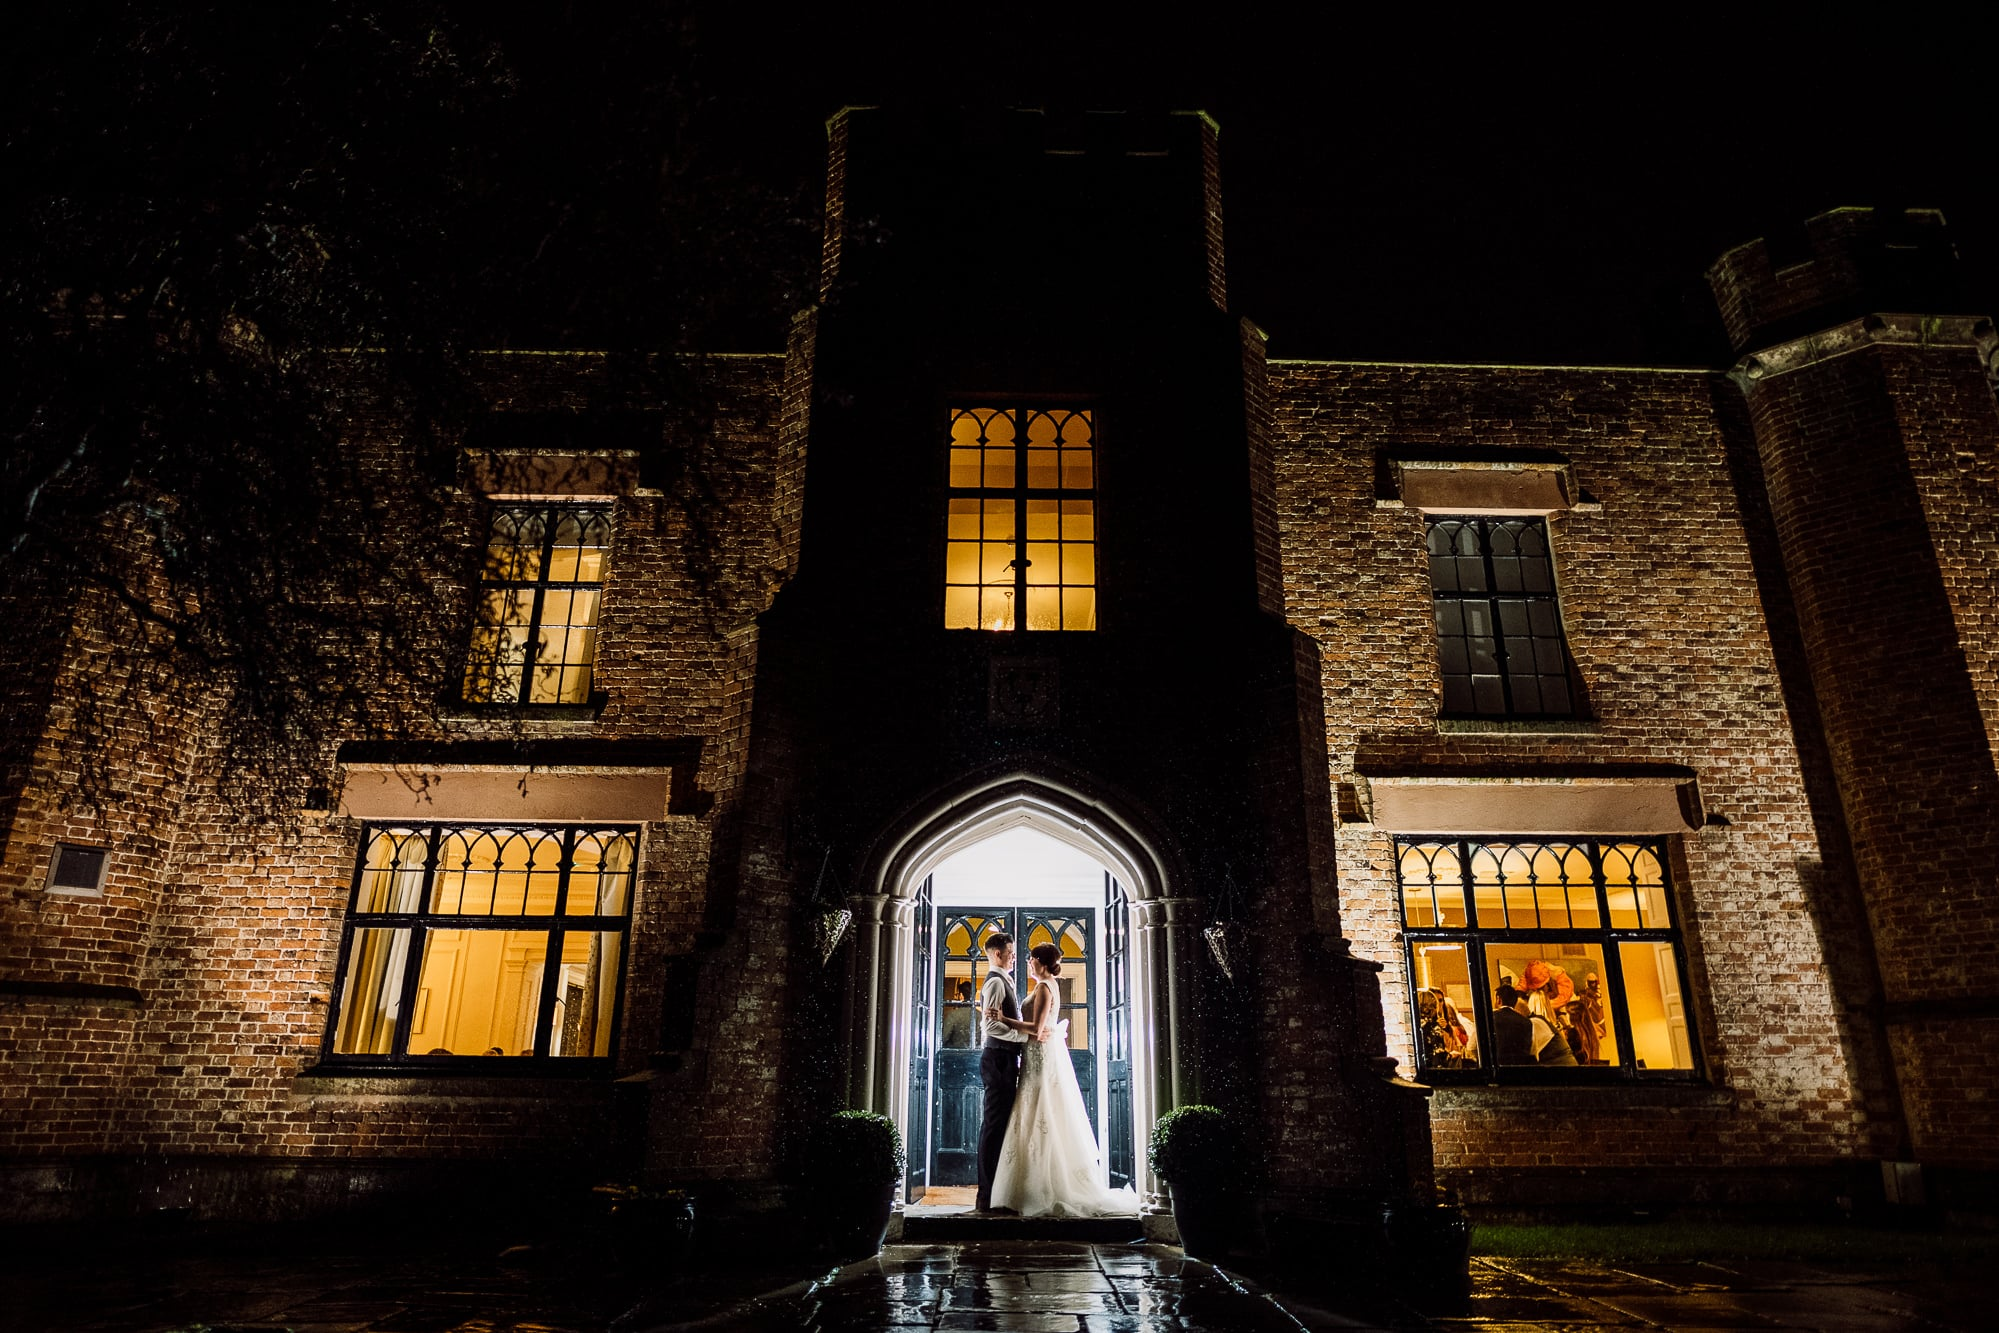 A posed photo at Crabwall Manor at night